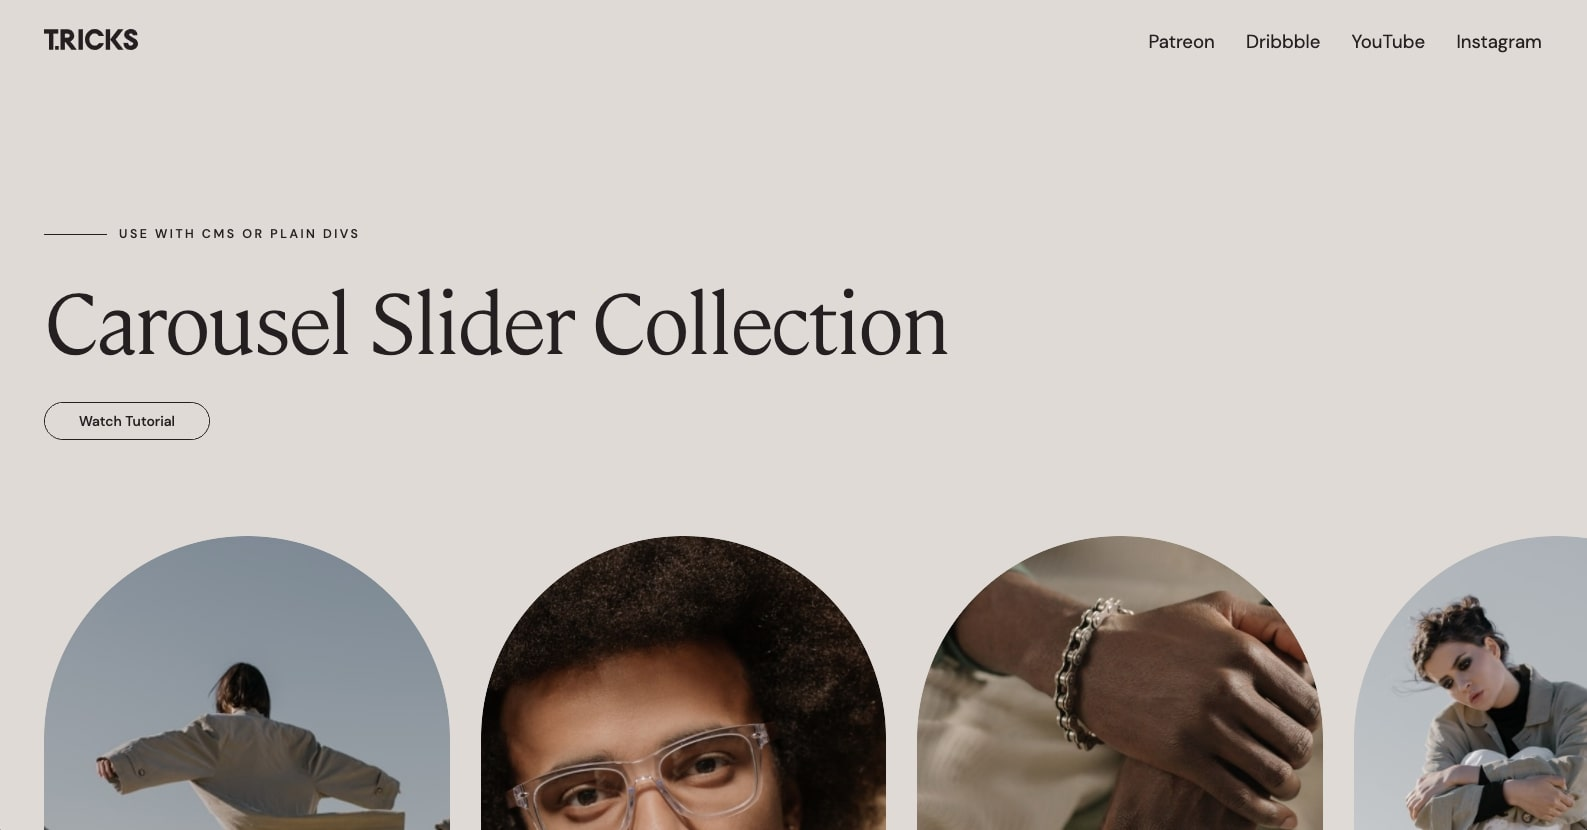 An image of the Carousel Slider Collection cloneable by Tim Ricks.